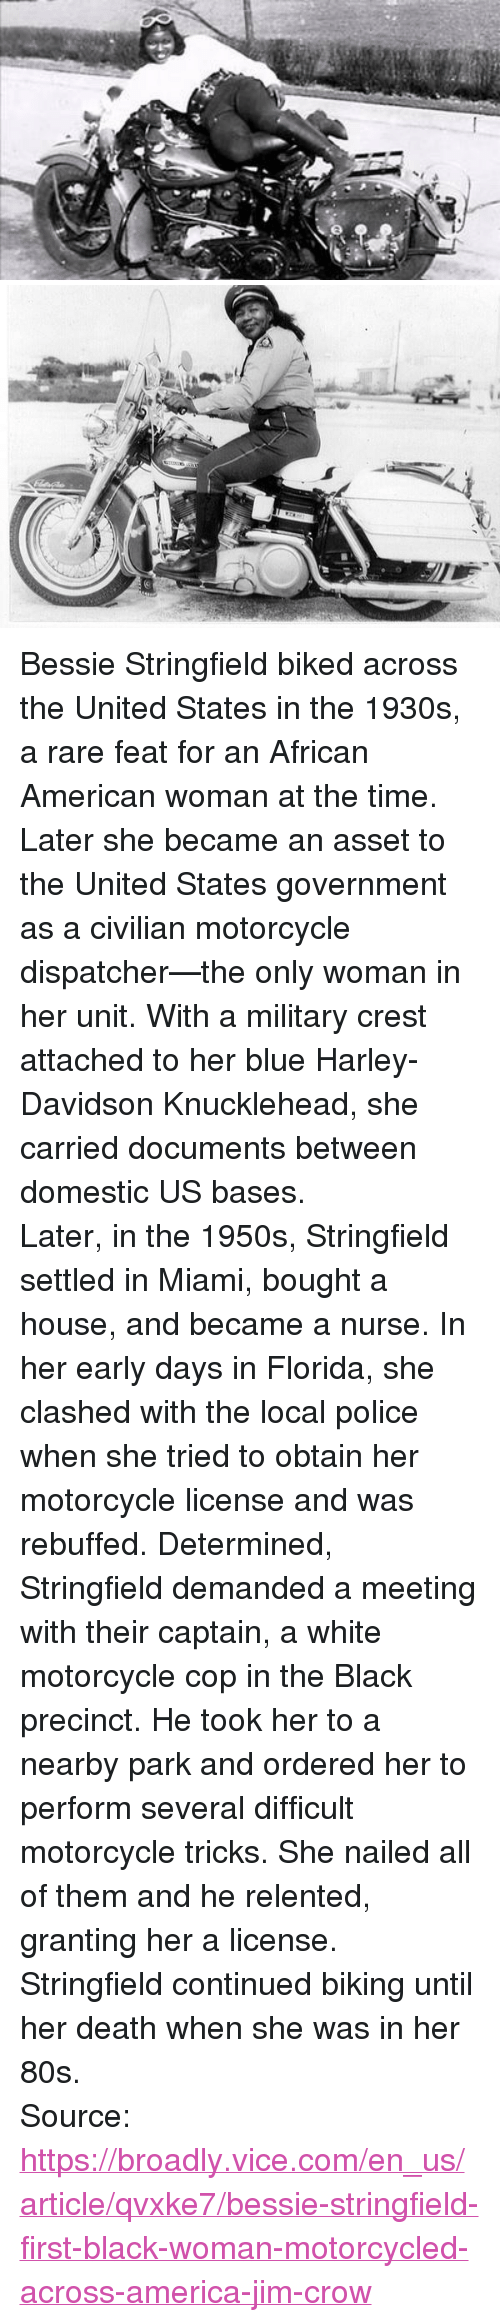 "80s, America, and Police: <p>Bessie Stringfield biked across the United States in the 1930s, a rare feat for an African American woman at the time. Later she became an asset to the United States government as a civilian motorcycle dispatcher—the only woman in her unit. With a military crest attached to her blue Harley-Davidson Knucklehead, she carried documents between domestic US bases.</p>  <p>Later, in the 1950s, Stringfield settled in Miami, bought a house, and became a nurse. In her early days in Florida, she clashed with the local police when she tried to obtain her motorcycle license and was rebuffed. Determined, Stringfield demanded a meeting with their captain, a white motorcycle cop in the Black precinct. He took her to a nearby park and ordered her to perform several difficult motorcycle tricks. She nailed all of them and he relented, granting her a license.</p>  <p>Stringfield continued biking until her death when she was in her 80s.</p>  Source: <a href=""https://broadly.vice.com/en_us/article/qvxke7/bessie-stringfield-first-black-woman-motorcycled-across-america-jim-crow"">https://broadly.vice.com/en_us/article/qvxke7/bessie-stringfield-first-black-woman-motorcycled-across-america-jim-crow</a>"